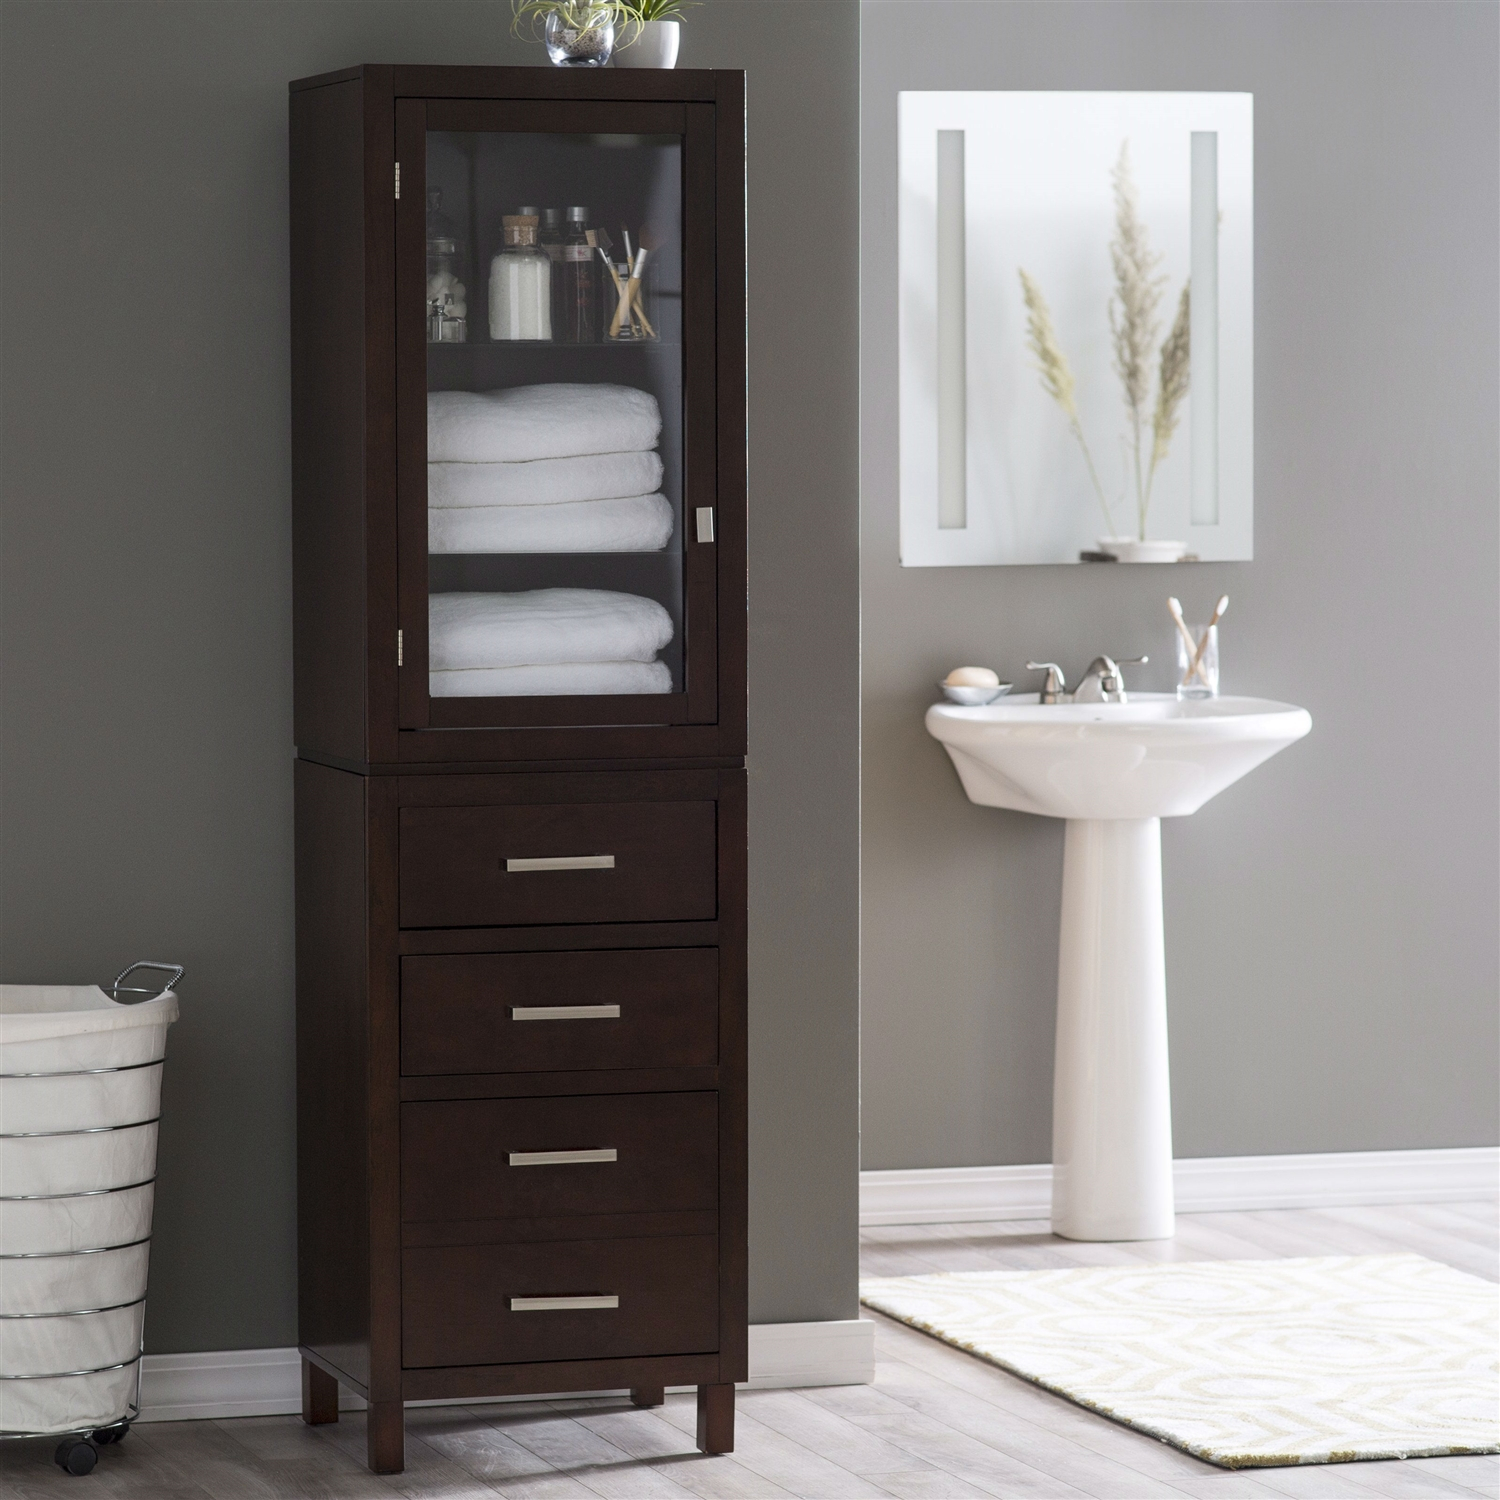 Espresso Wood Linen Tower Bathroom Storage Cabinet With Glass Paneled Door 1972 3979 regarding sizing 1500 X 1500